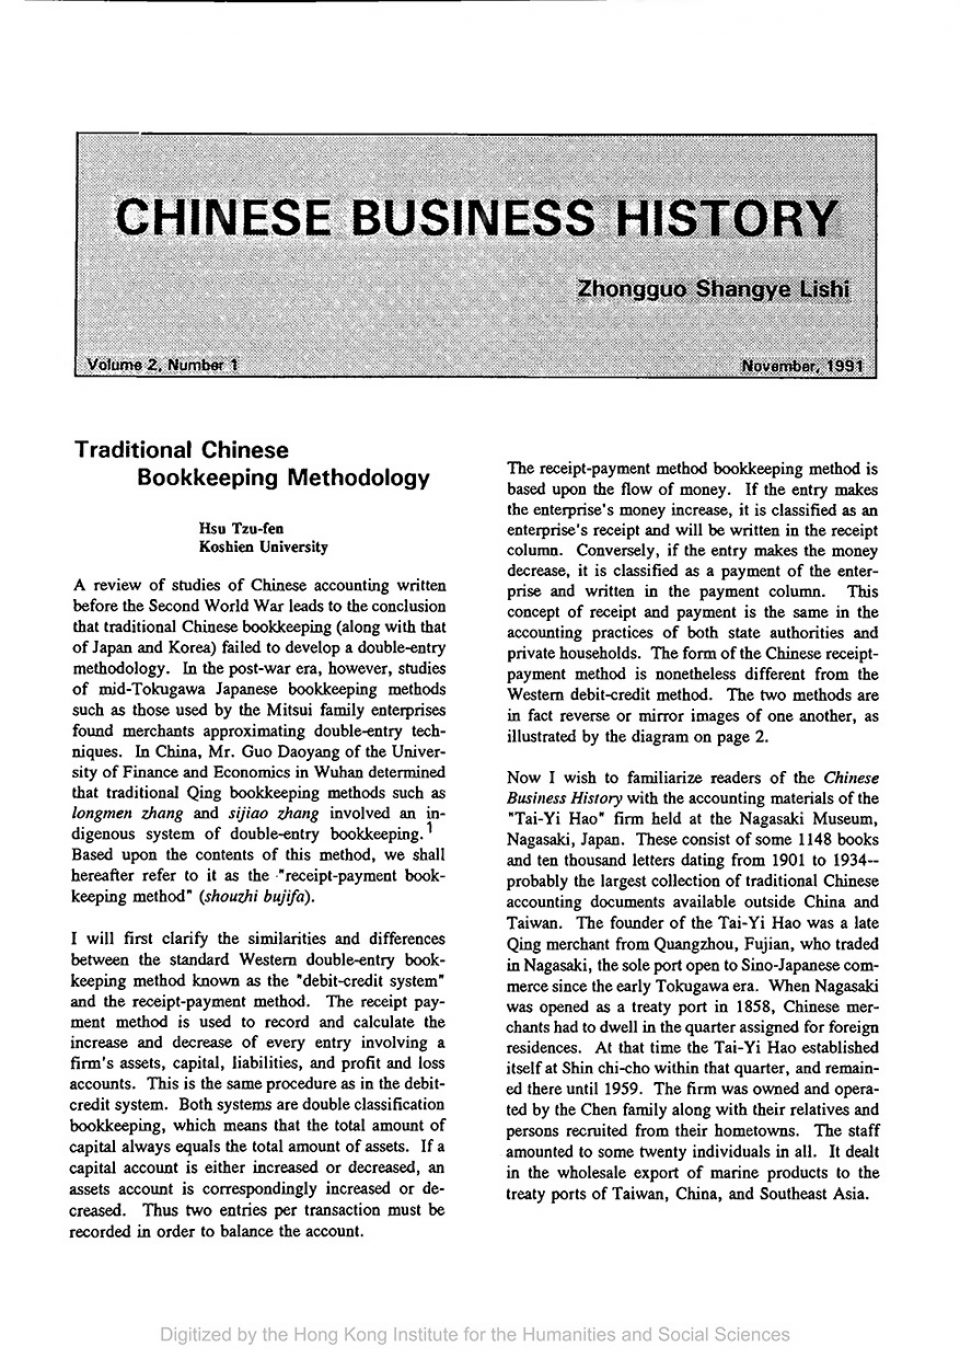 Cover of Chinese Business History Journal Volume 2, Number 1